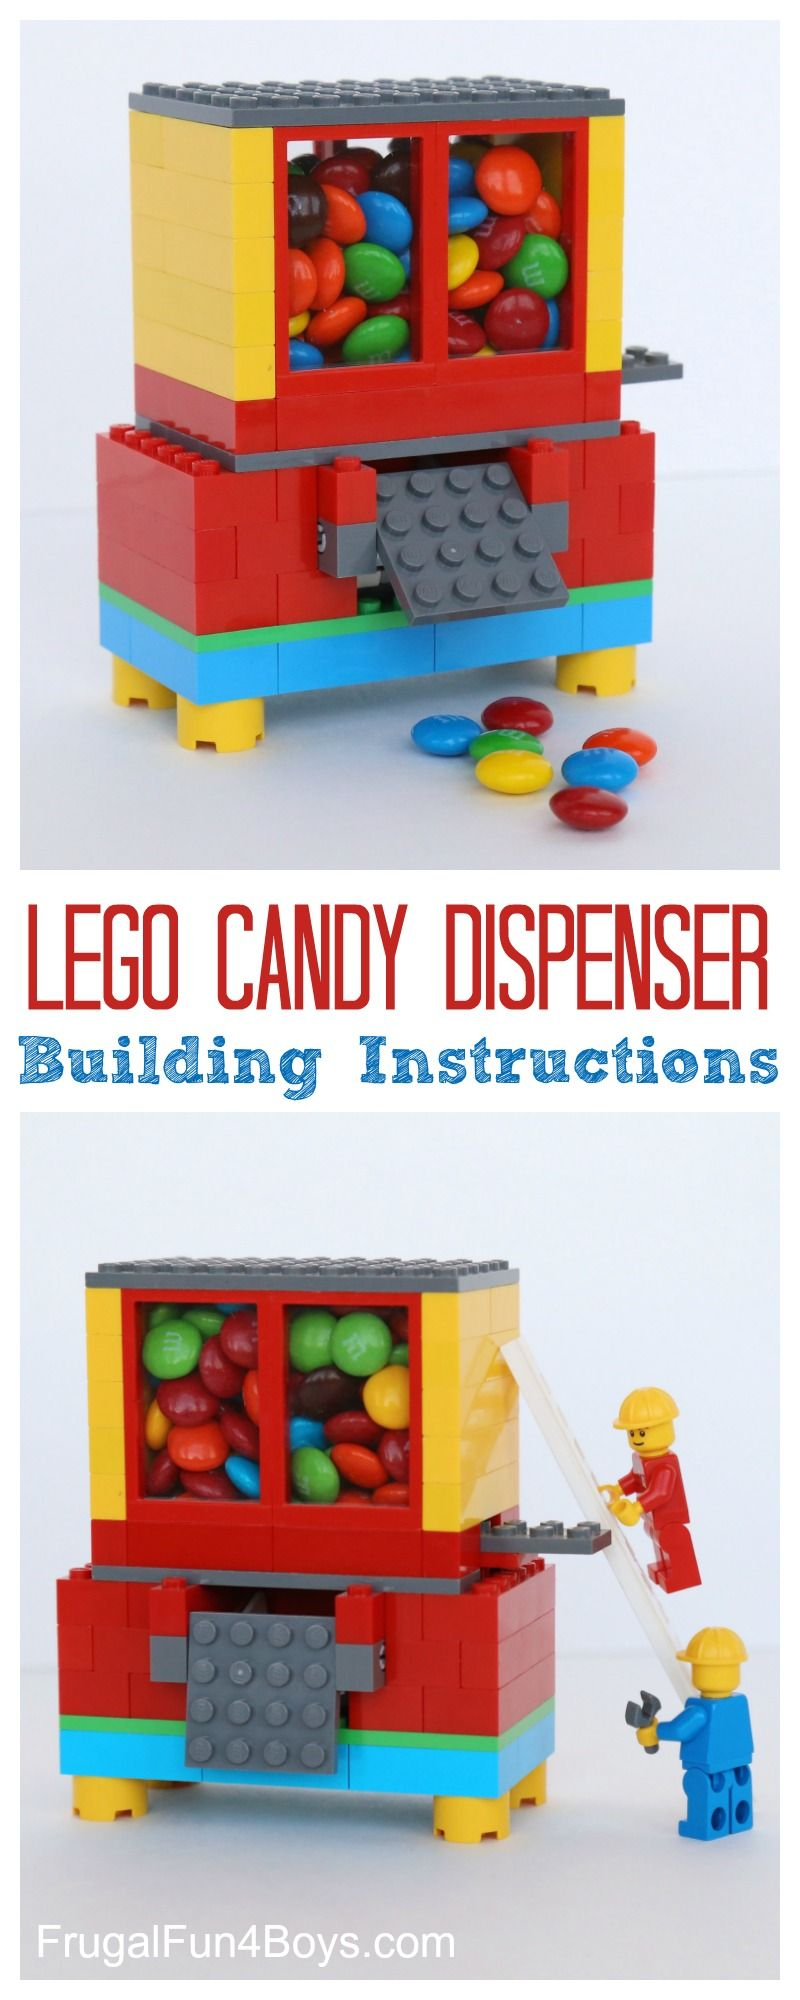 How to Build a Lego Candy Dispenser - Frugal Fun For Boys and Girls